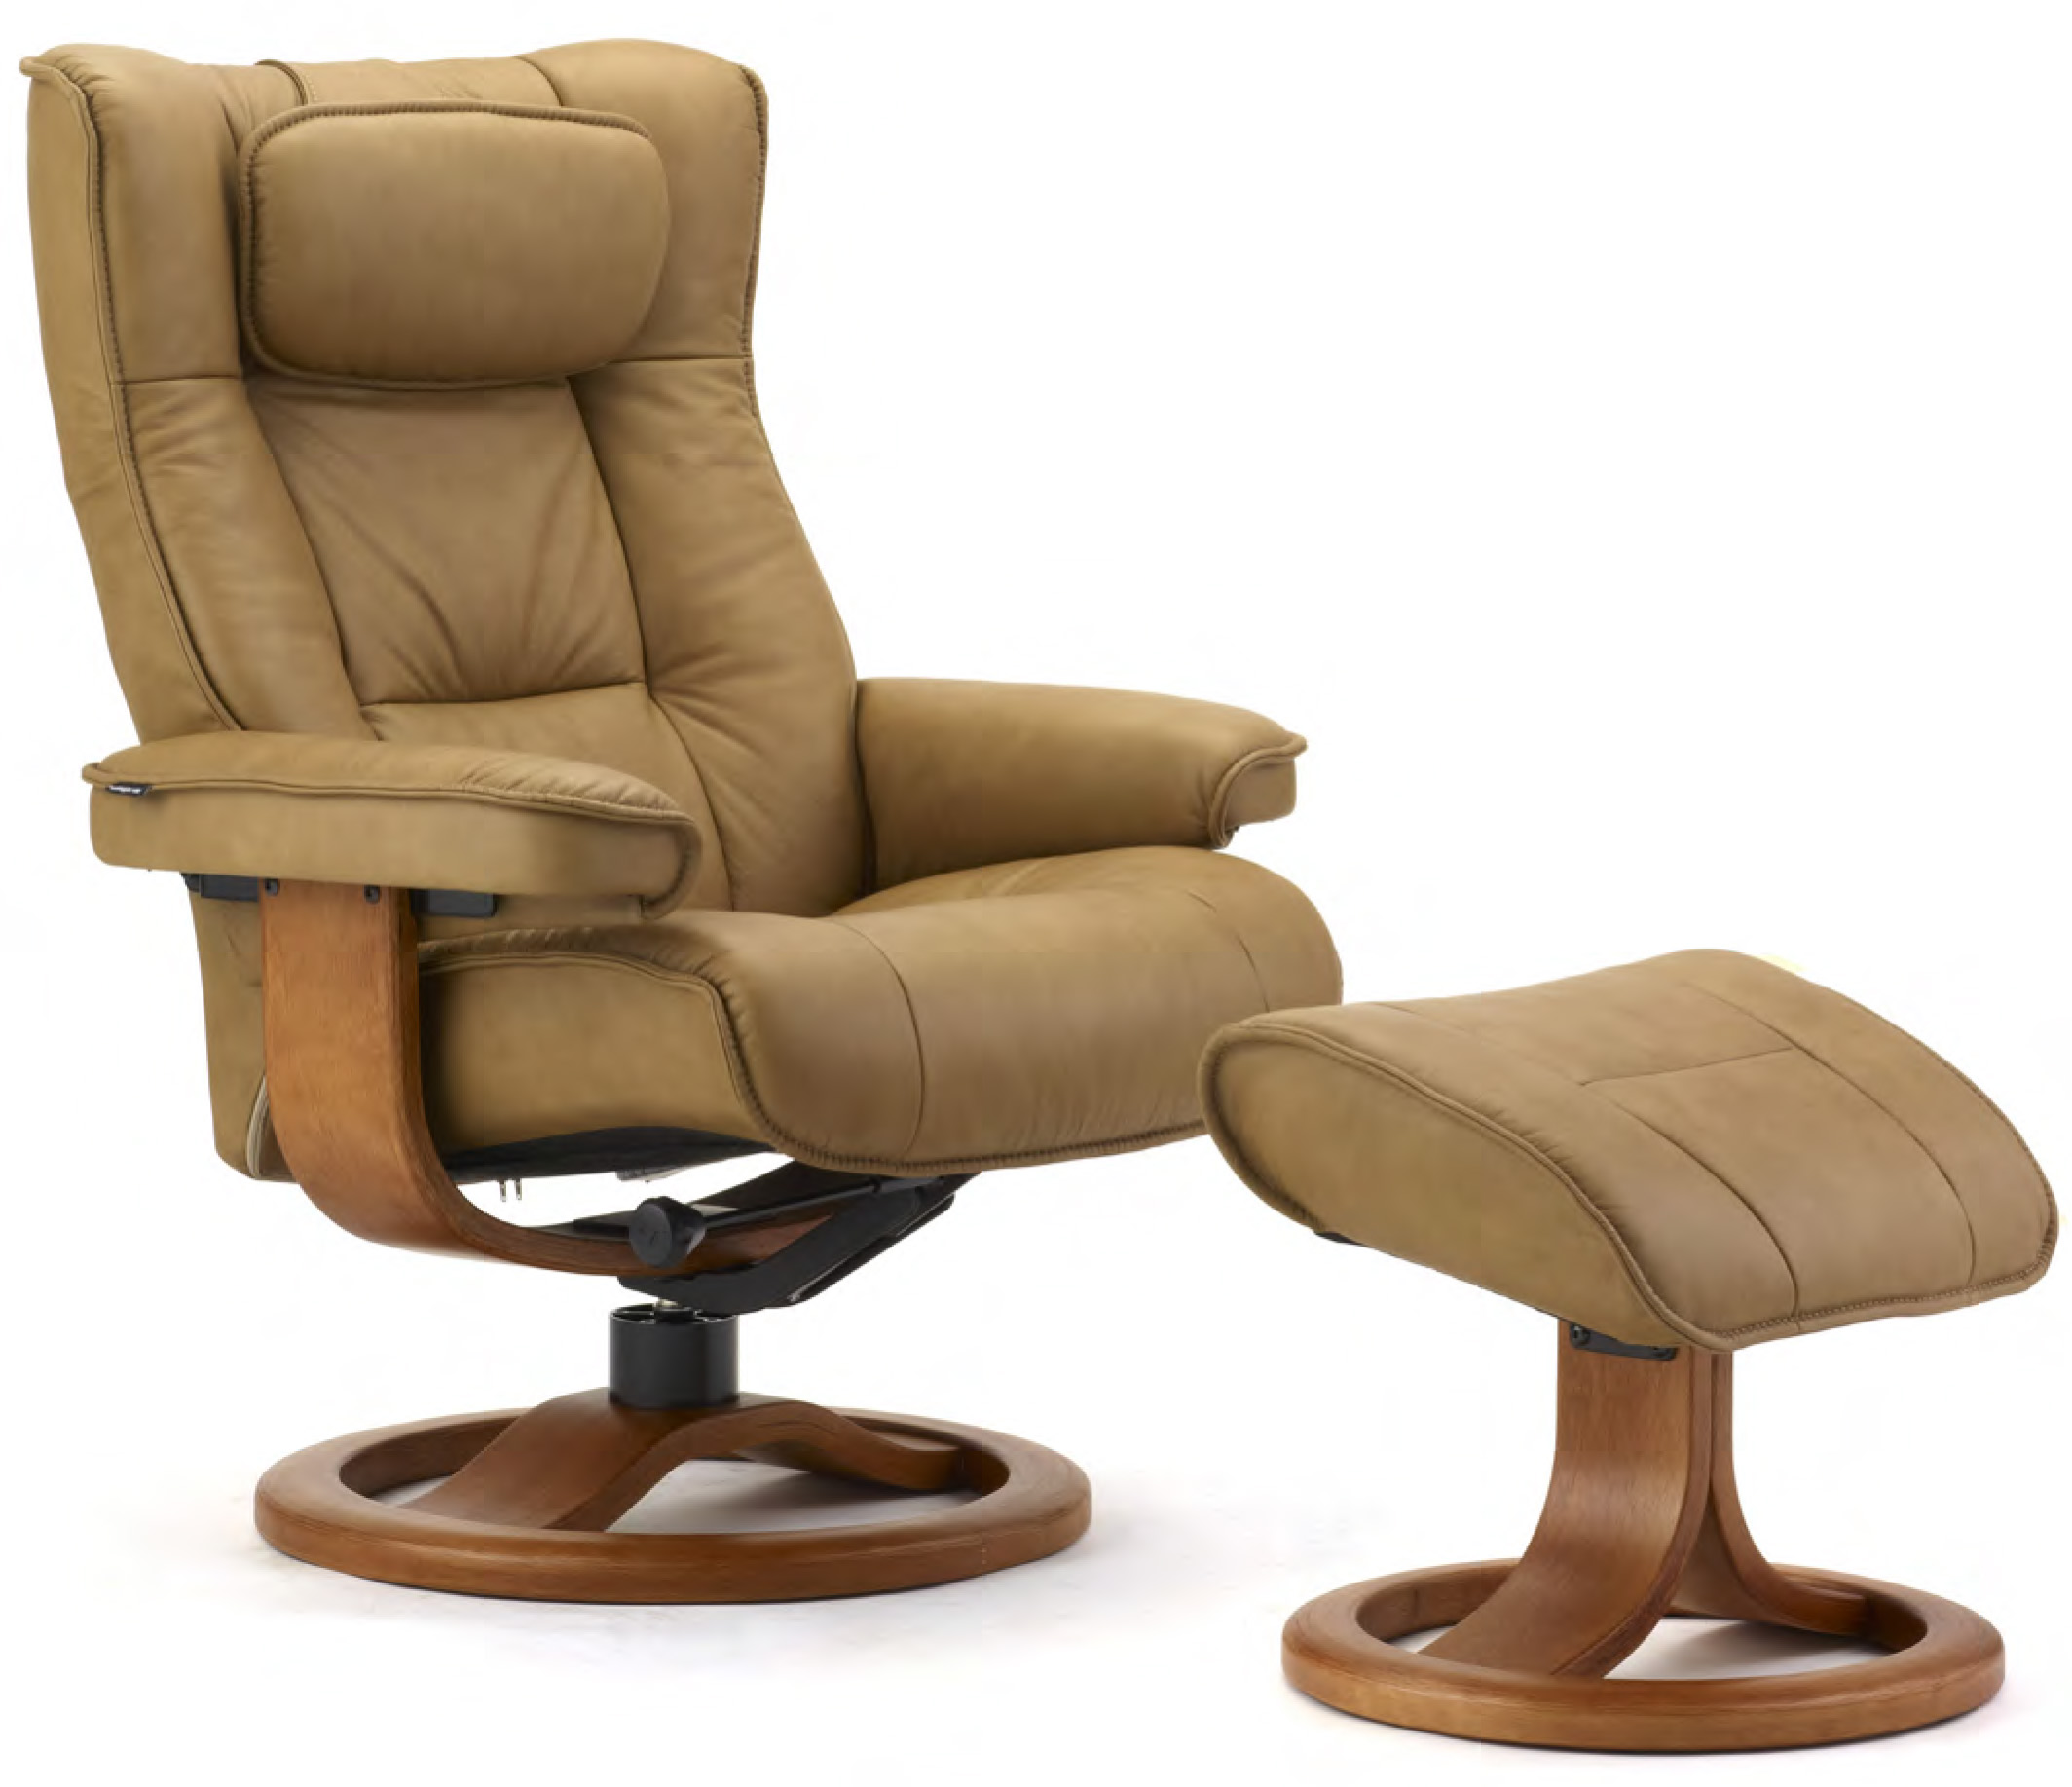 Fjords Scandic Leather Recliner Chair With The R Frame Wood Base